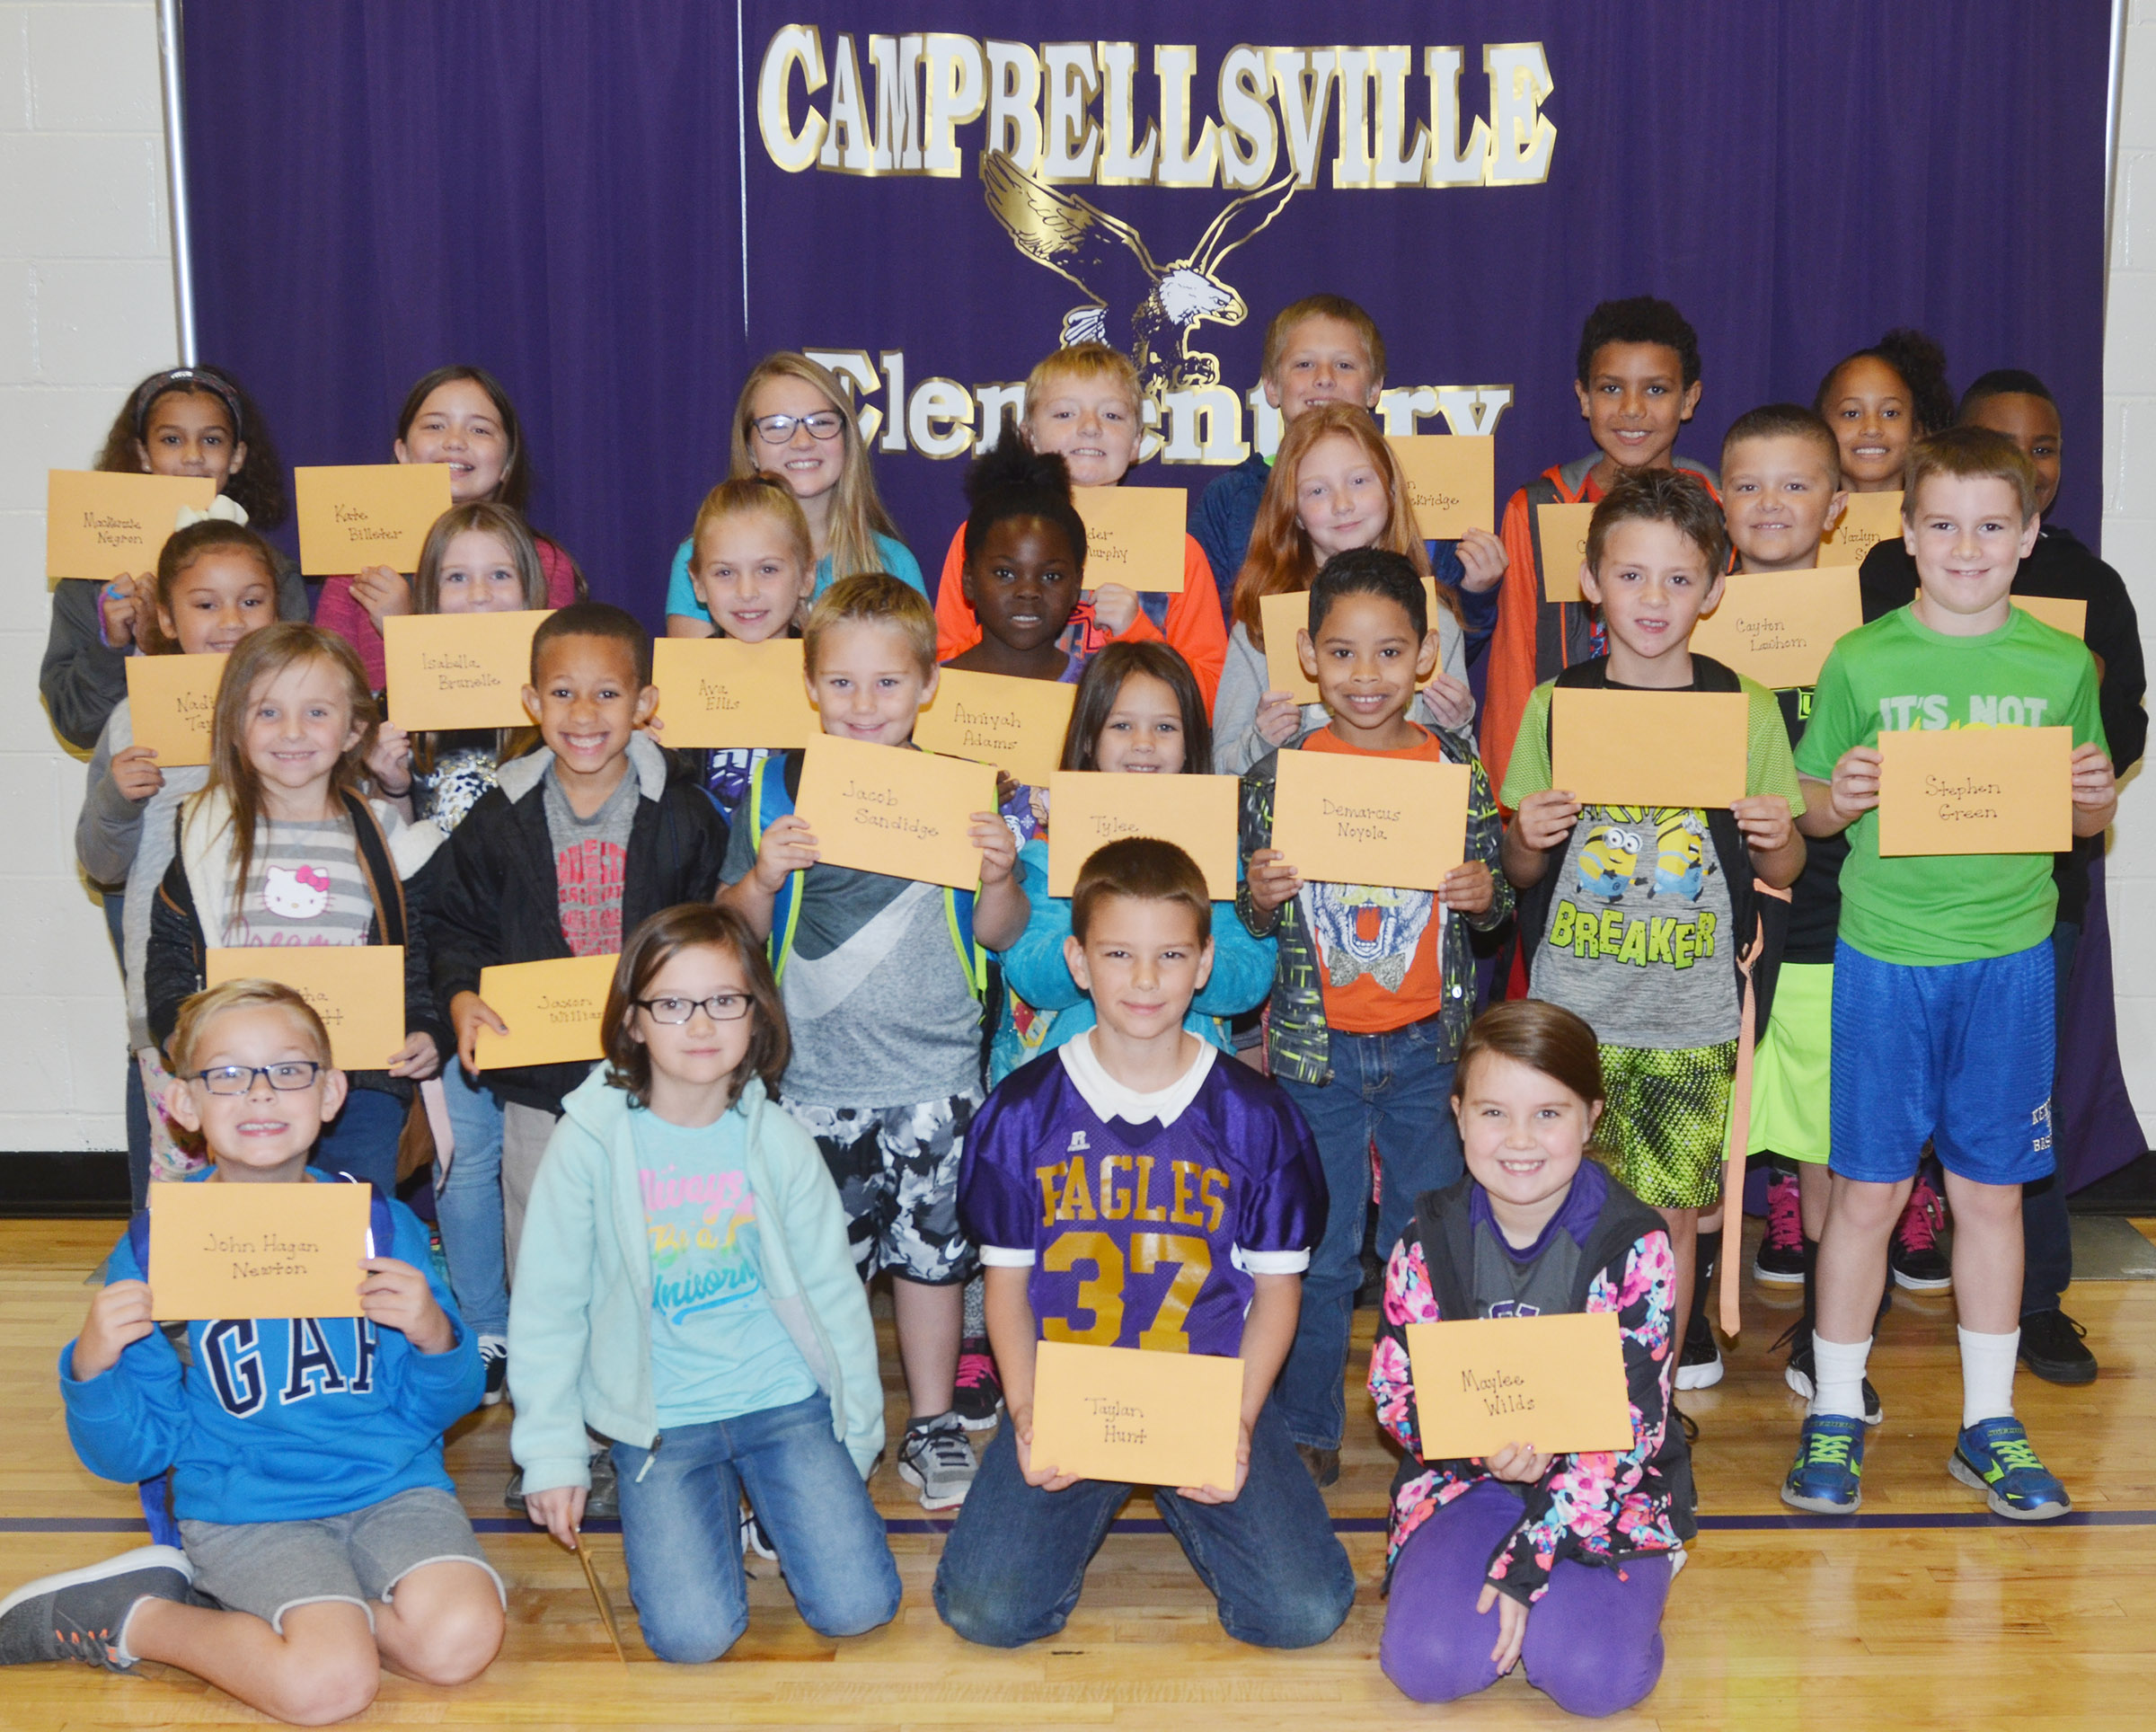 From left, front, are first-grader John Hagan Newton, second-grader Anna Keith, fifth-grader Taylan Hunt and fourth-grader Maylee Wilds. Second row, kindergartners Tabitha Leggett, Jaxon Williams, Jacob Sandidge and Tylee Britton, first-graders Demarcus Noyola and Bentley Shively and third-grader Stephen Green. Third row, second-graders Nadia Taylor and Izzy Brunelle, third-grader Ava Ellis, first-grader Aniyah Adams, fourth-grader Savannah Wethington, third-grader Cayton Lawhorn and fourth-grader Shaiden Calhoun. Back, fifth-graders Mackenzie Negron, Kate Billeter and Lilyan Murphy, fourth-grader Ryder Murphy, third-grader Evan Lockridge, fourth-grader Christian Hart and third-grader Yazlyn Sutton. Absent from the photo are first-grader Justice Nelson and second-grader Lainey Price.